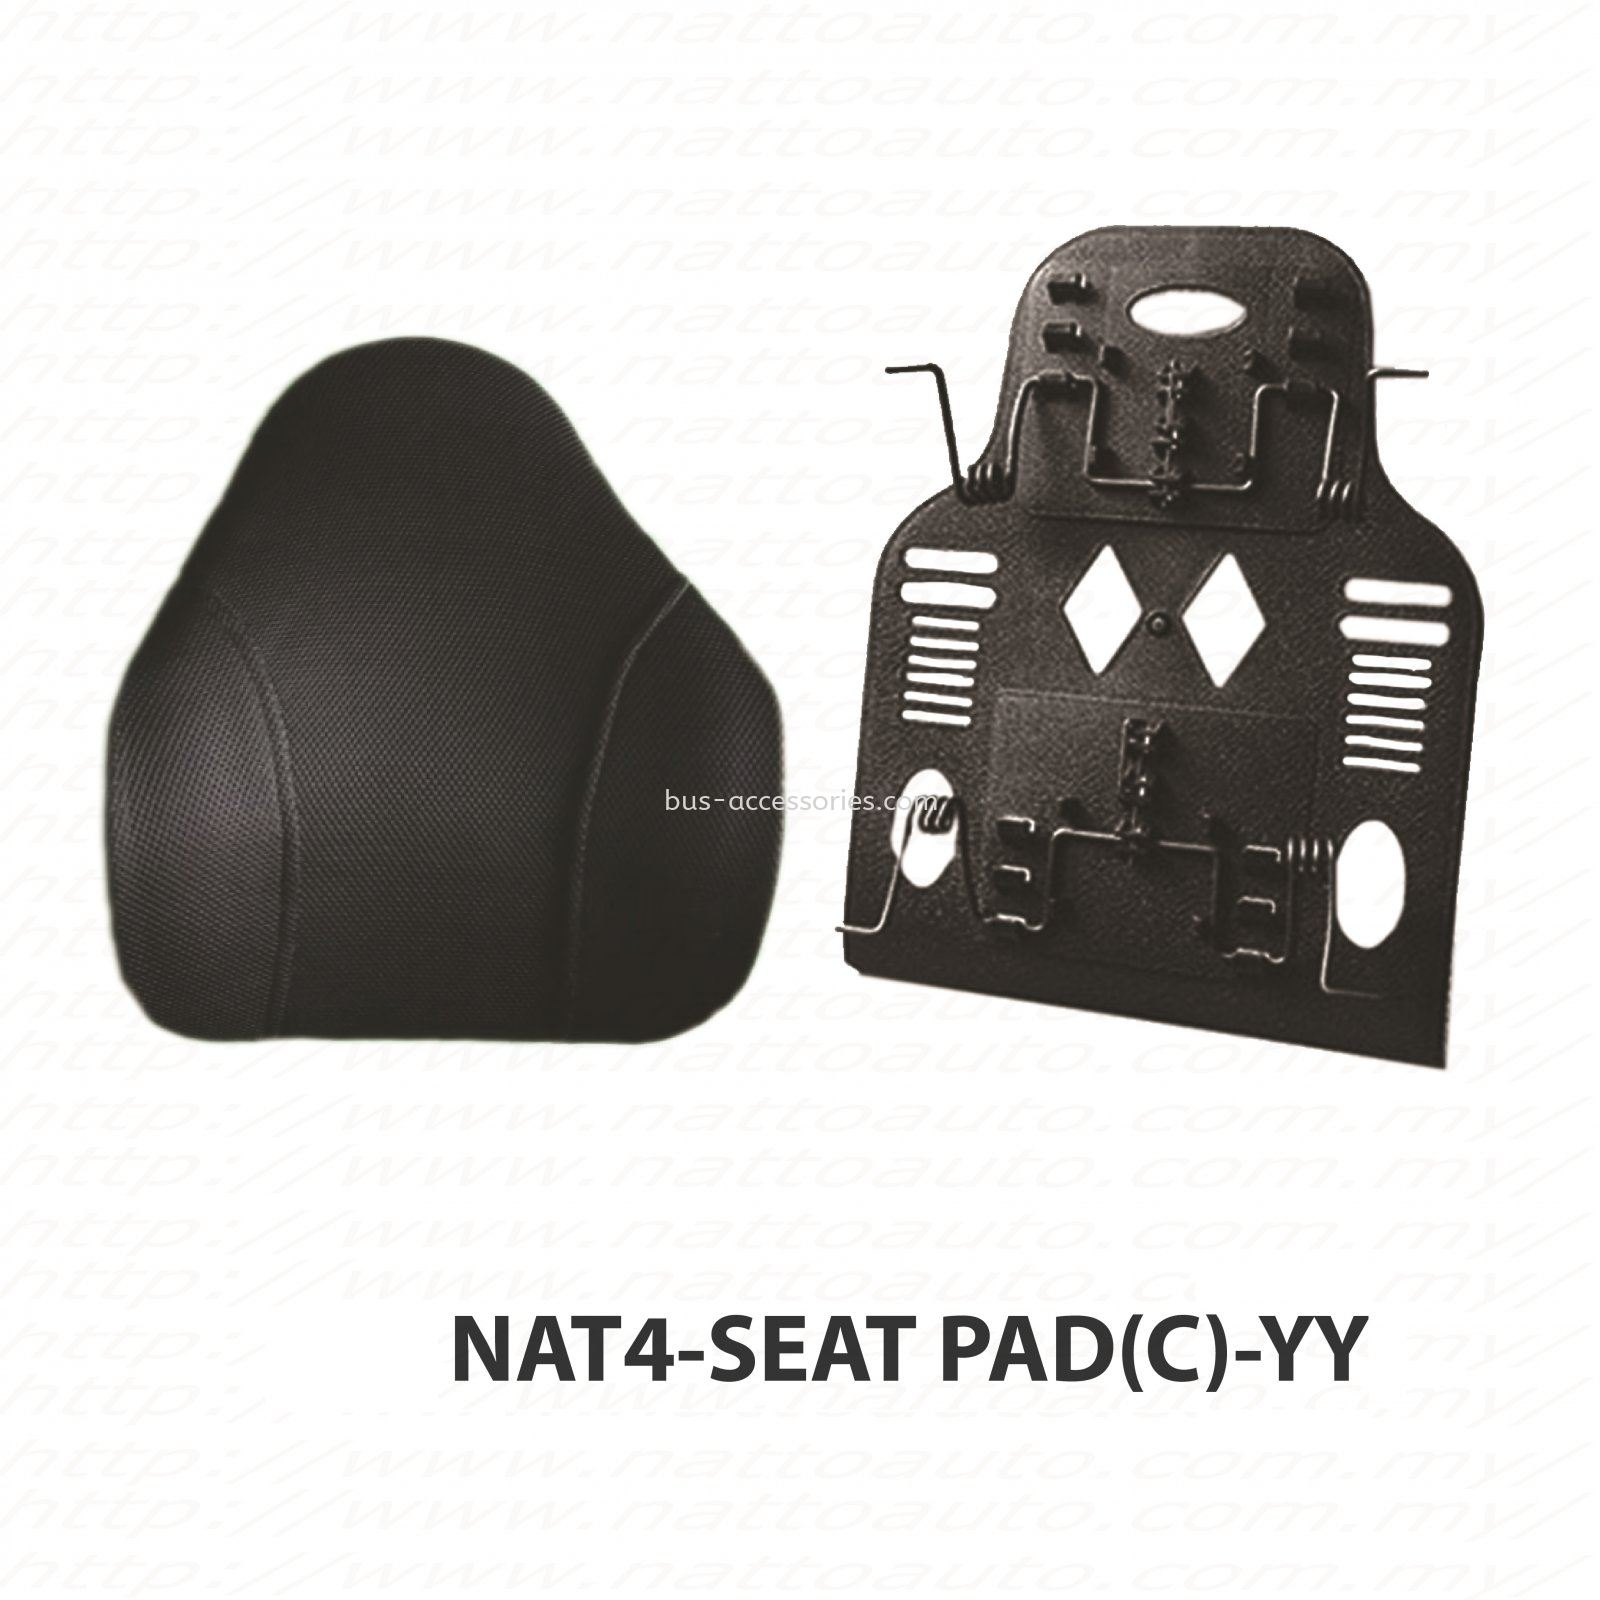 SEAT PAD BACK REST